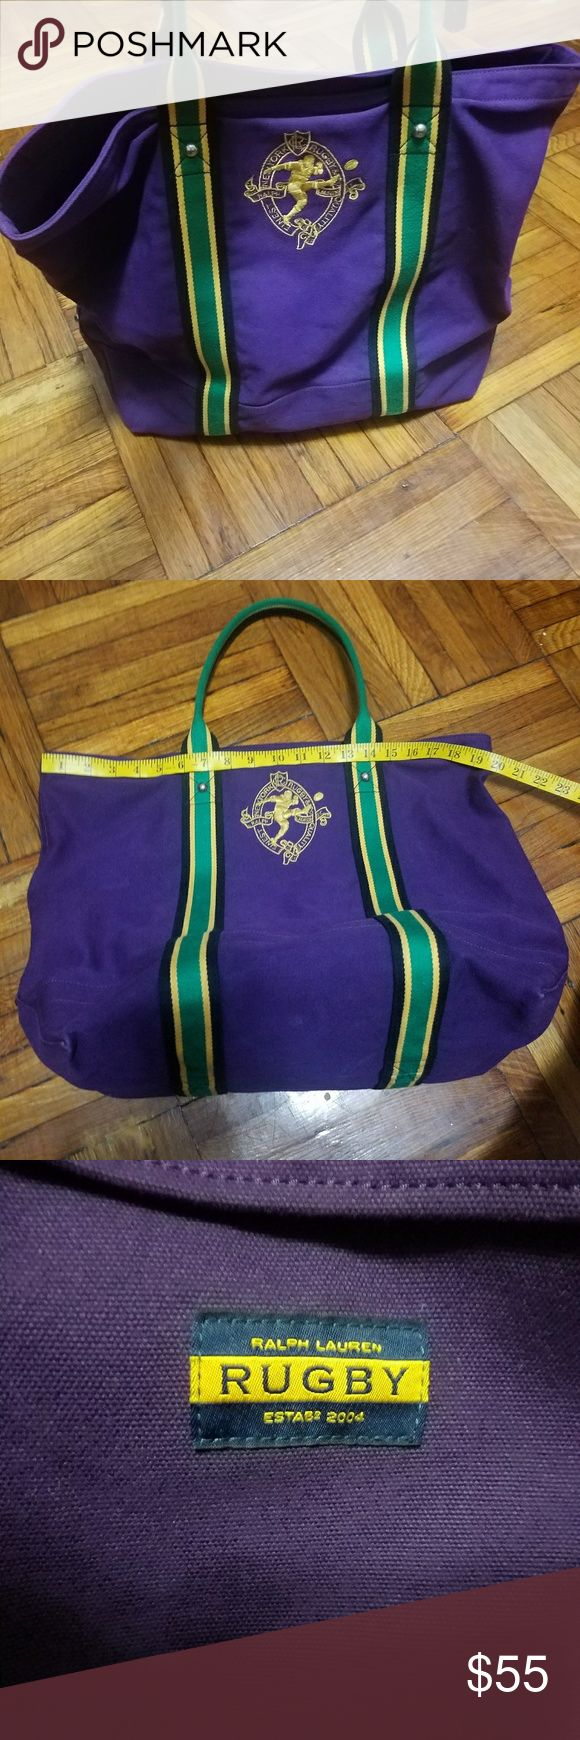 Ralp Lauren Rugby Canvas tote Like new and in great condition Ralph Lauren Bags